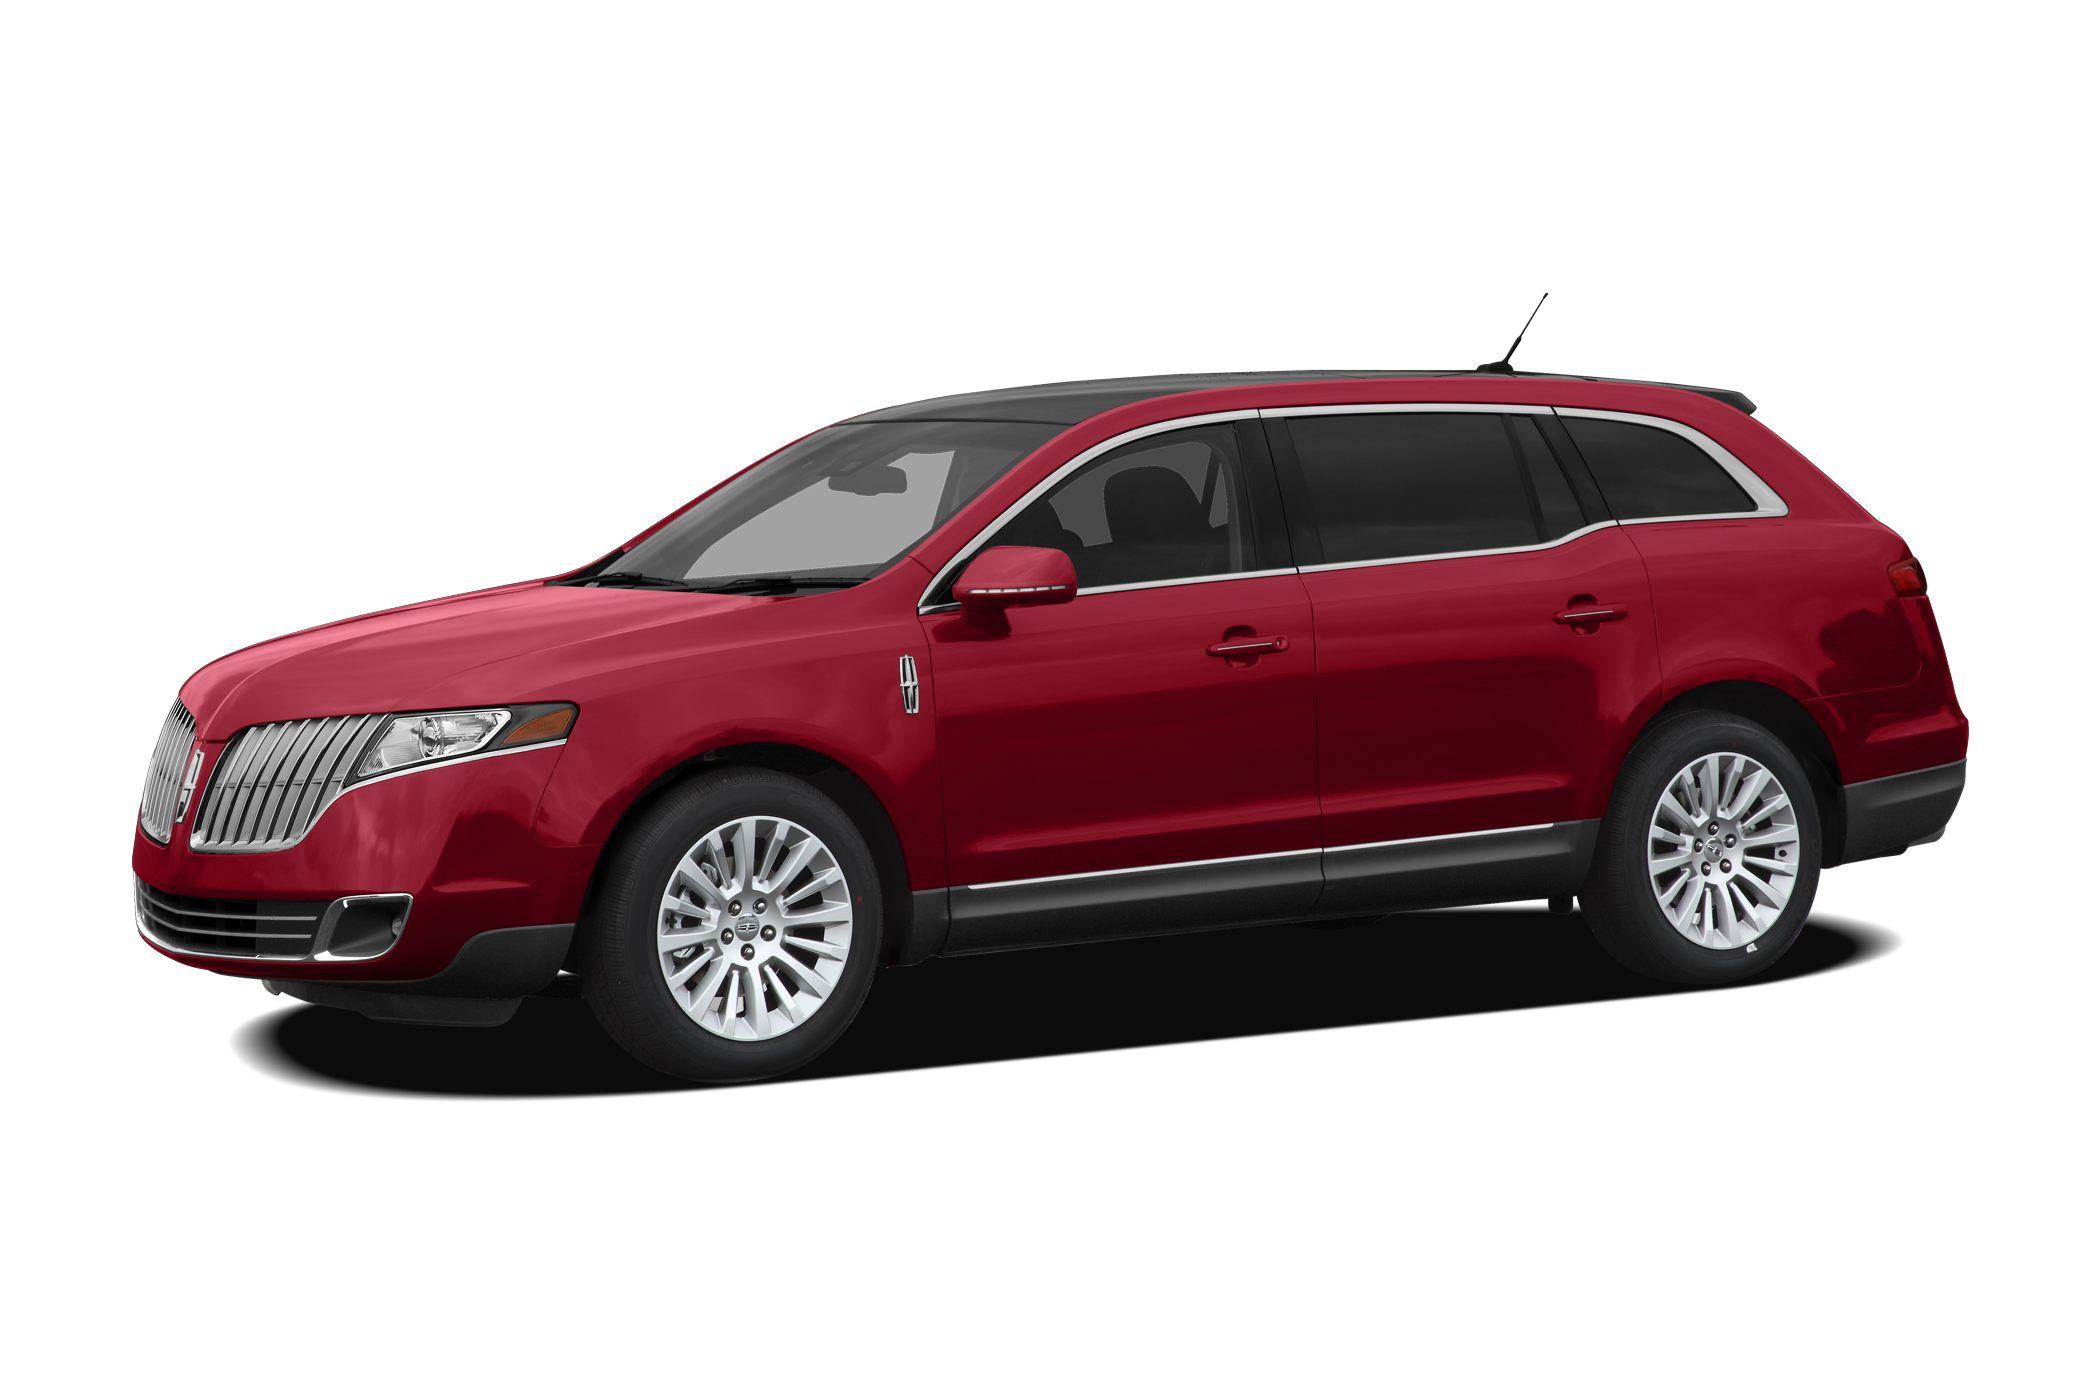 2010 Lincoln MKT Wagon for sale in Calumet City for $15,898 with 101,293 miles